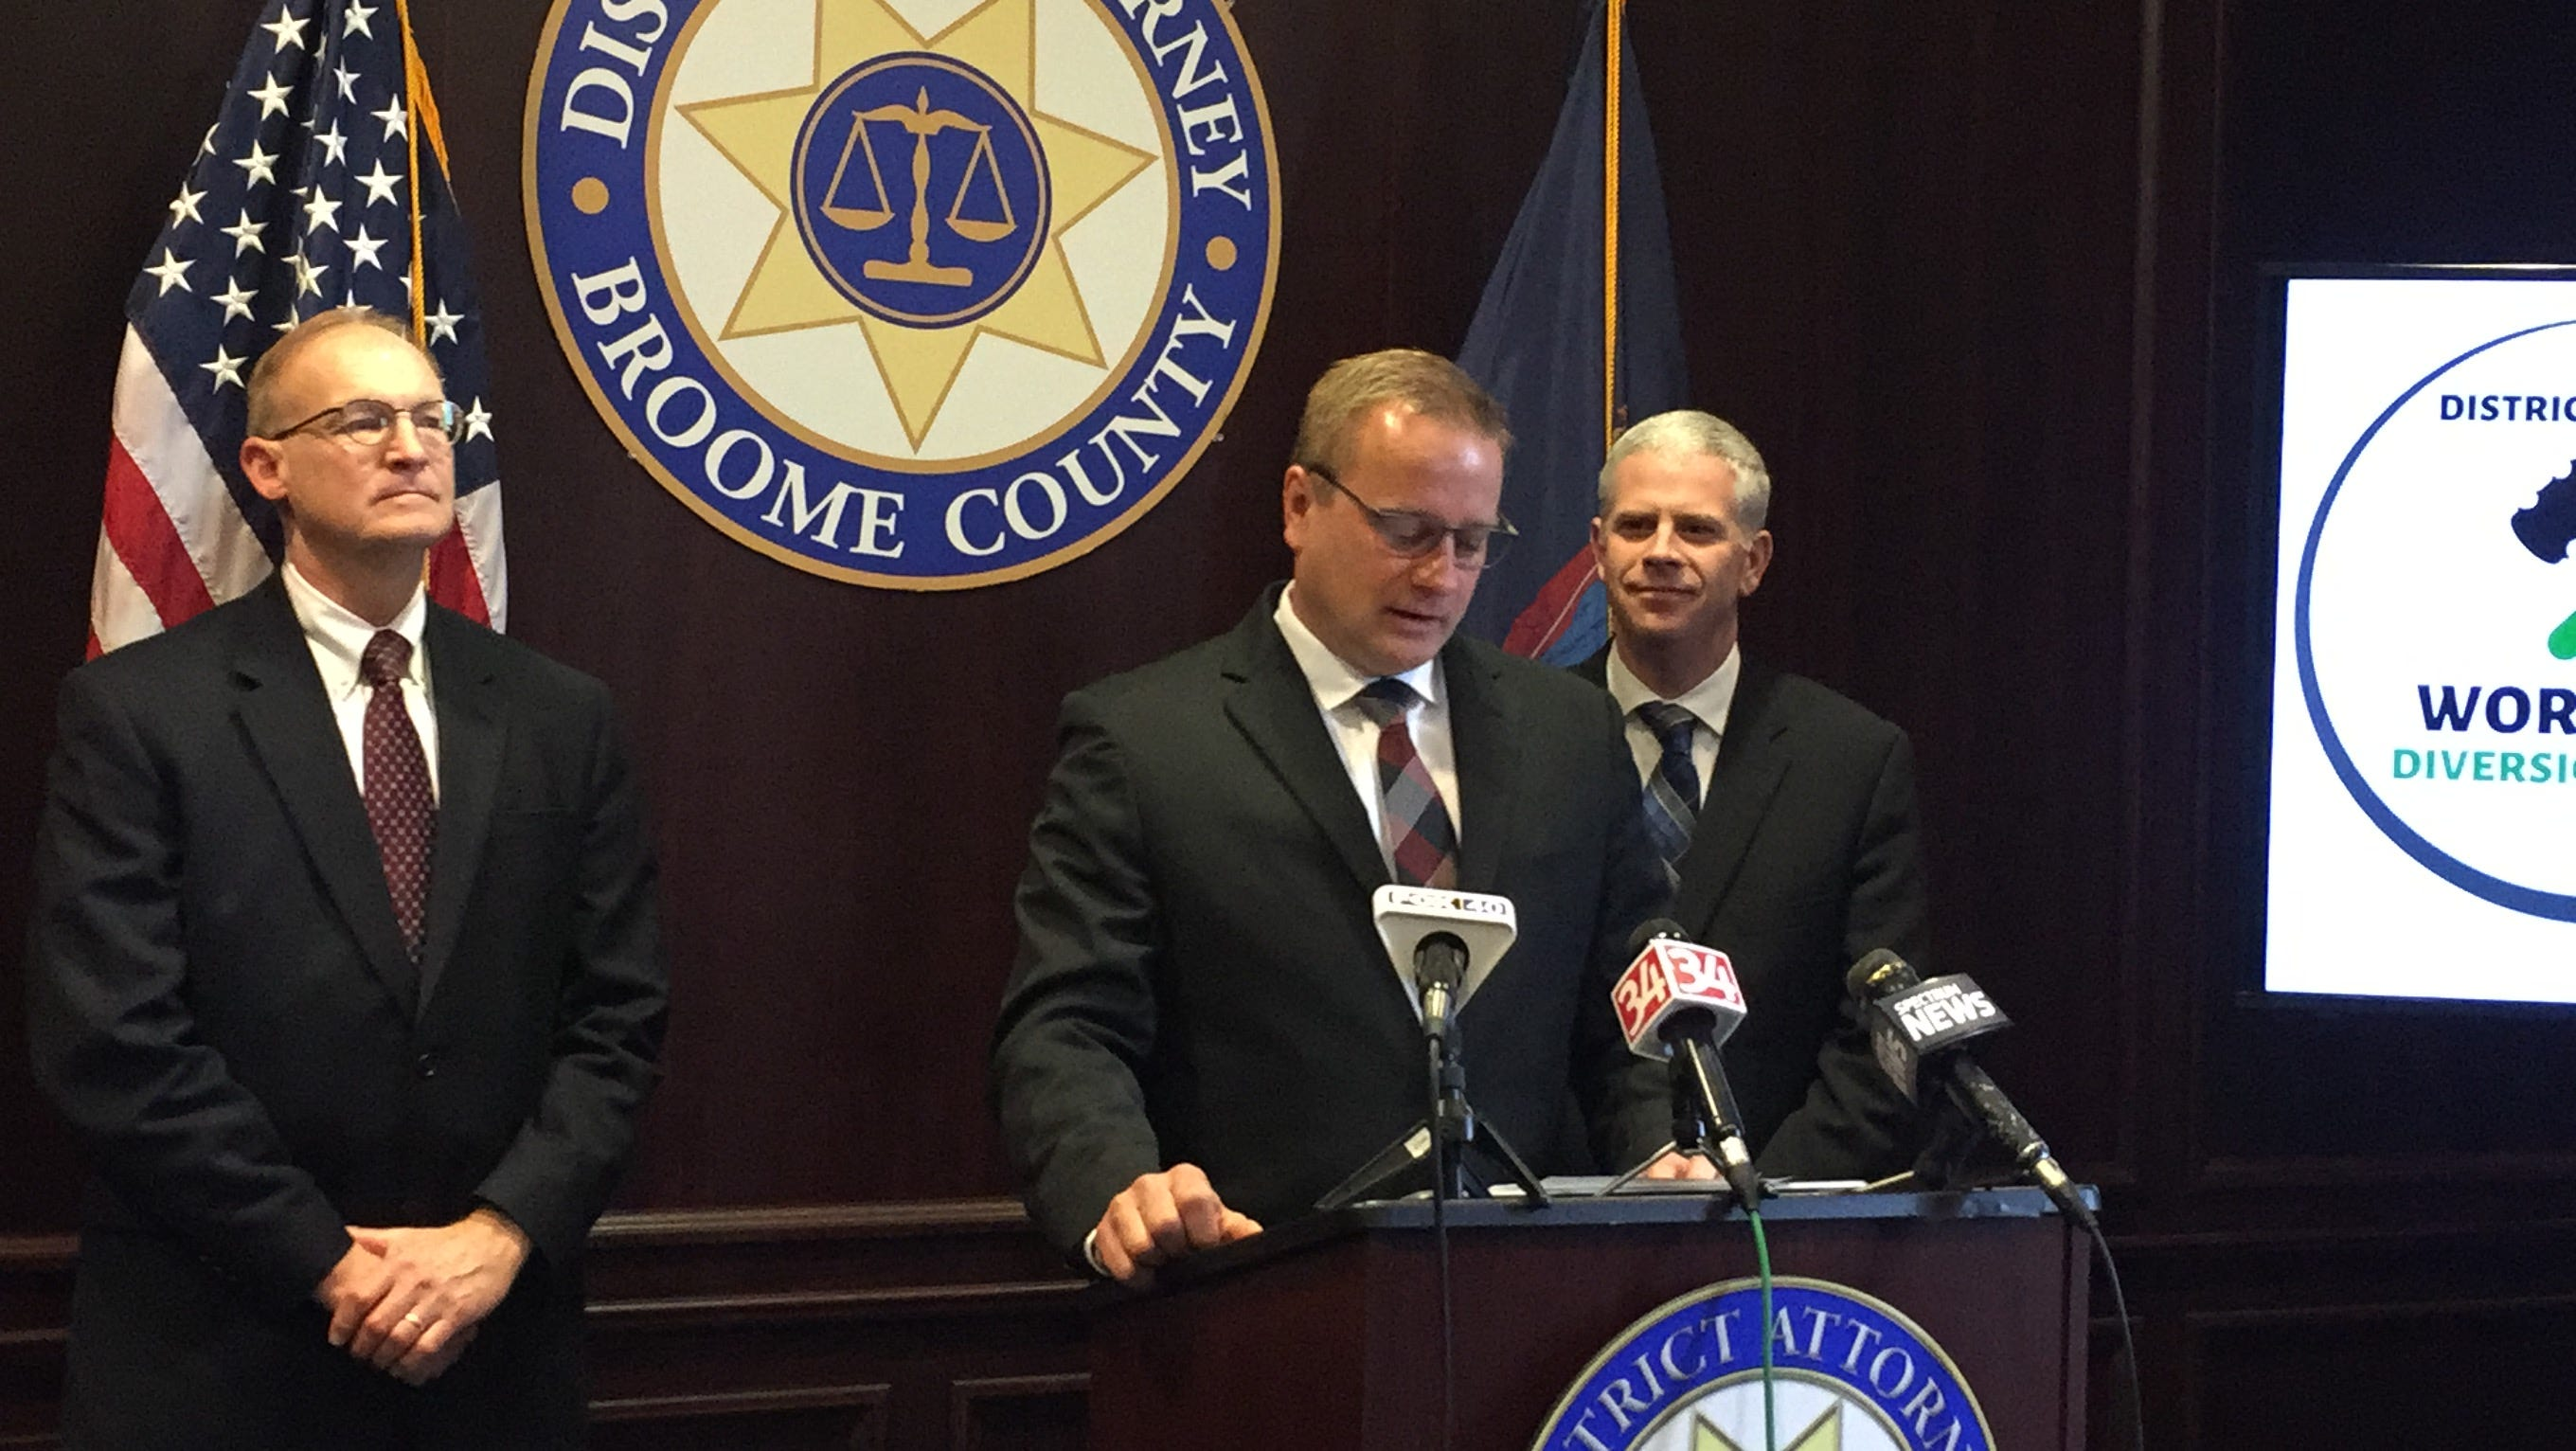 Broome County District Attorney Steve Cornwell, center, and Broome County Executive Jason Garnar, right, announce a workforce diversion program aimed at reducing low-level crimes.